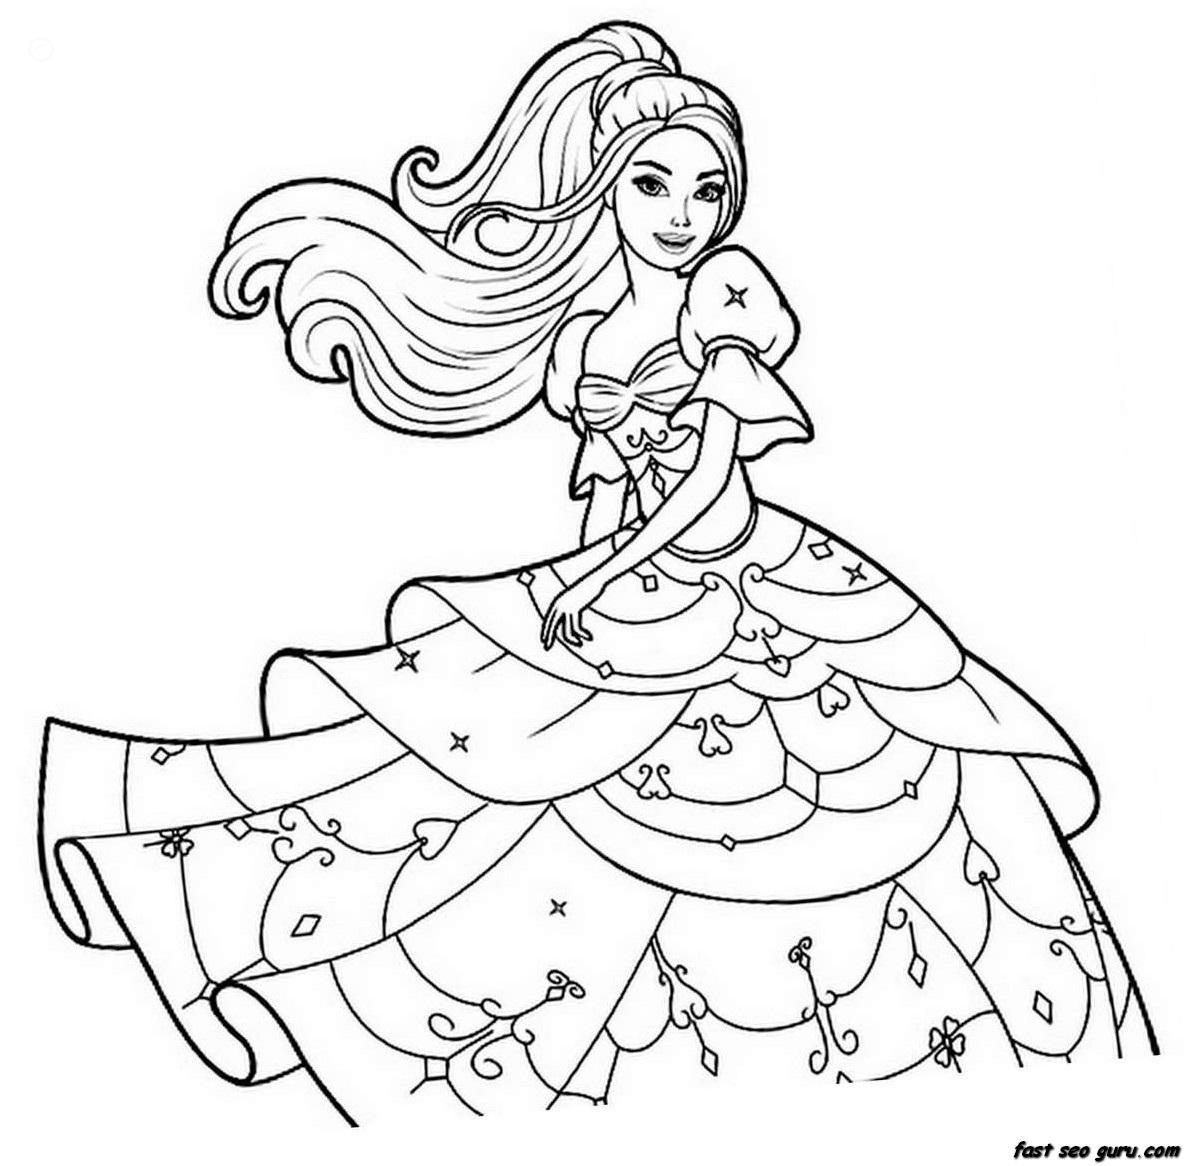 Barbie coloring pageprintablecoloring pages